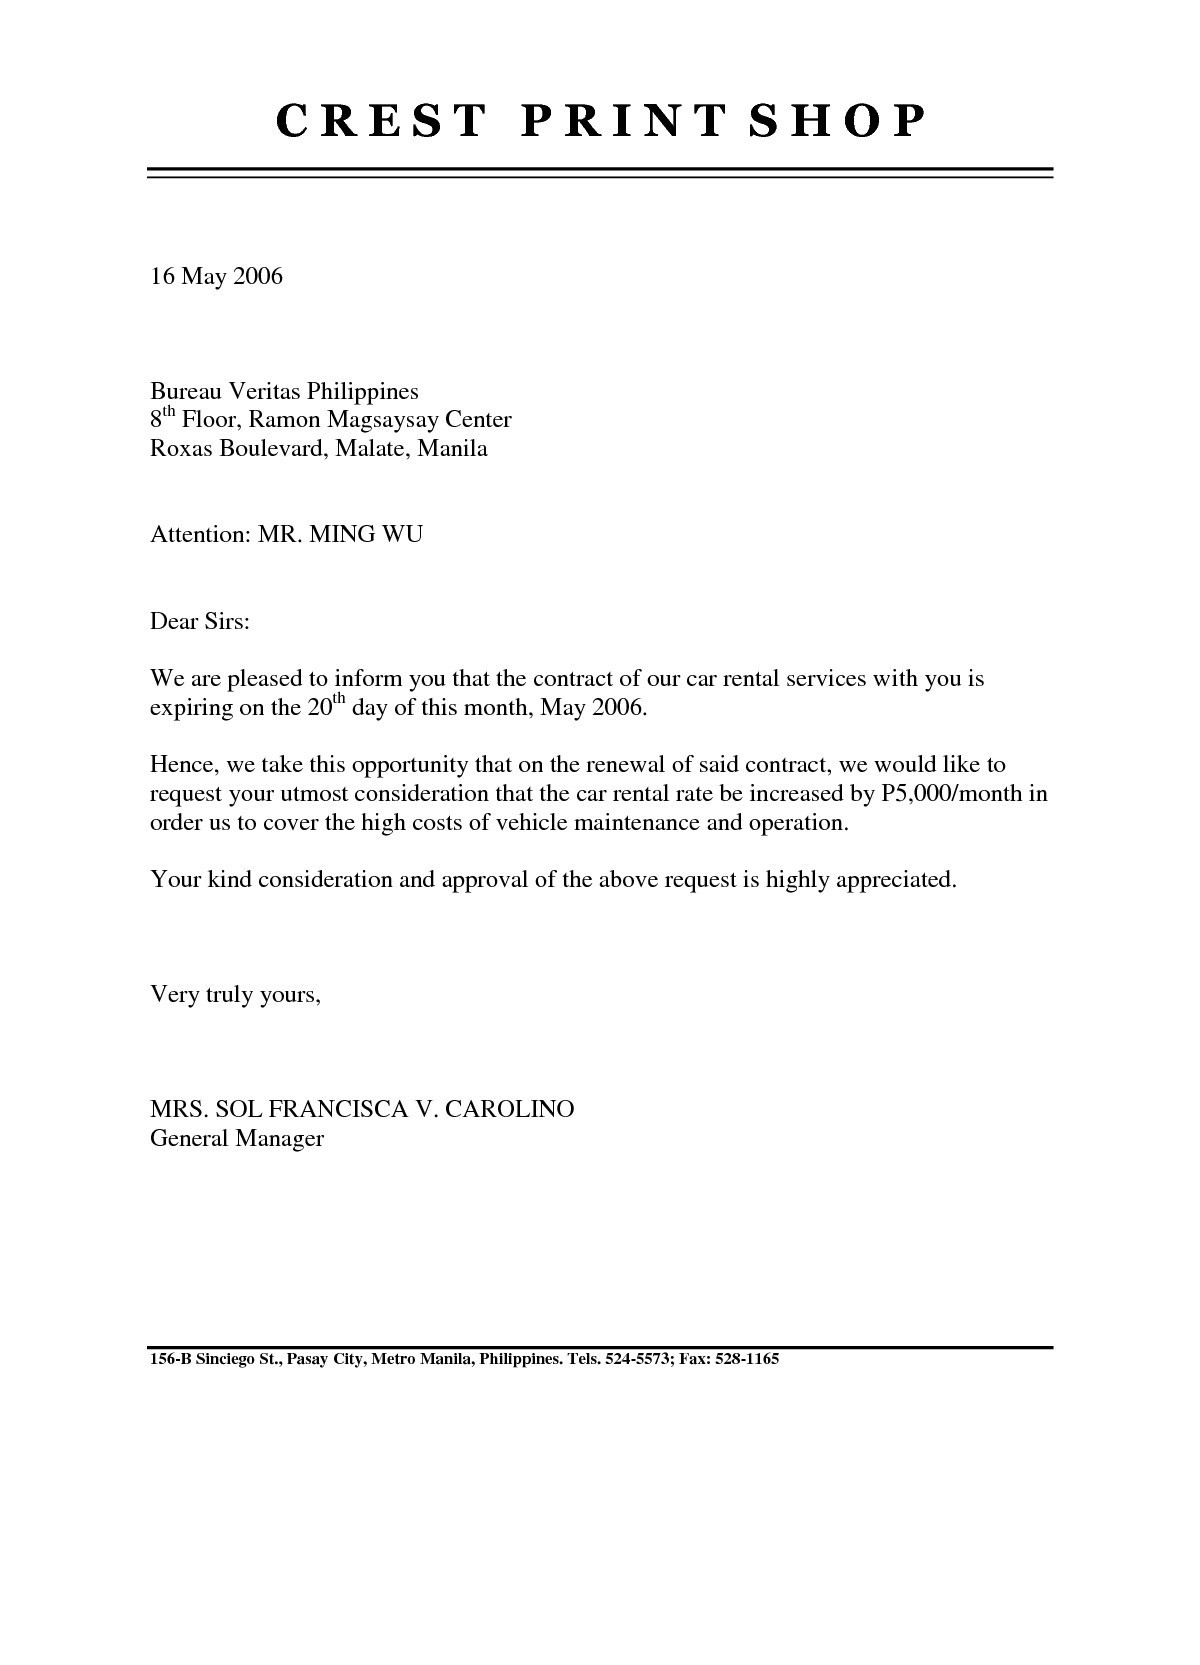 rental agreement letter template example-Od Renewal Letter Sample Archives Codeshaker Co Best Renewal Lease Renewal Letter 19-r